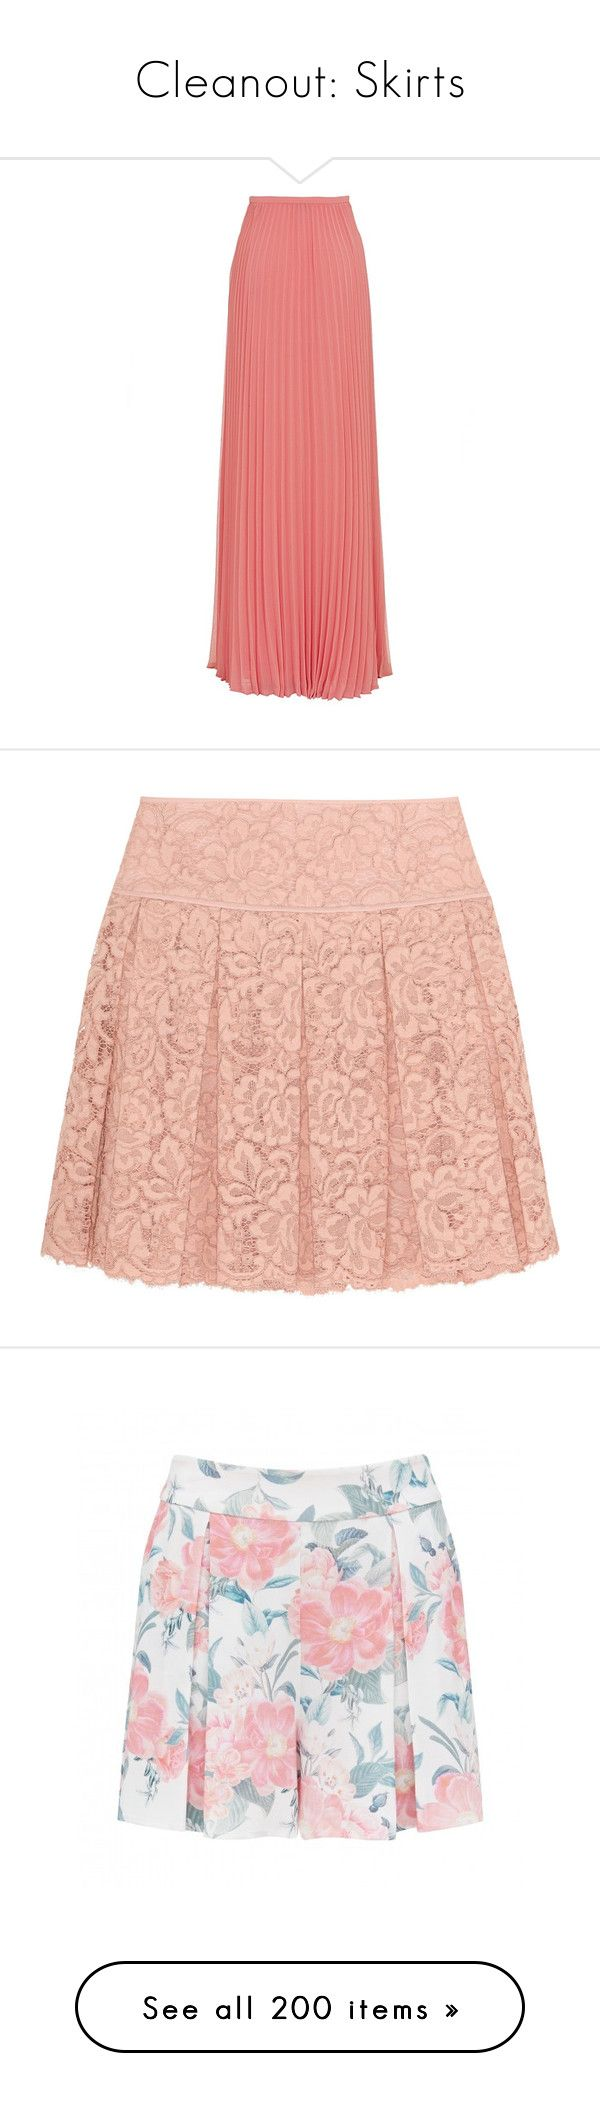 """""""Cleanout: Skirts"""" by mscody on Polyvore featuring women's fashion, skirts, maxi skirts, bottoms, long pink skirt, pink skirt, long pleated skirt, long skirts, halston heritage skirt and mini skirts"""